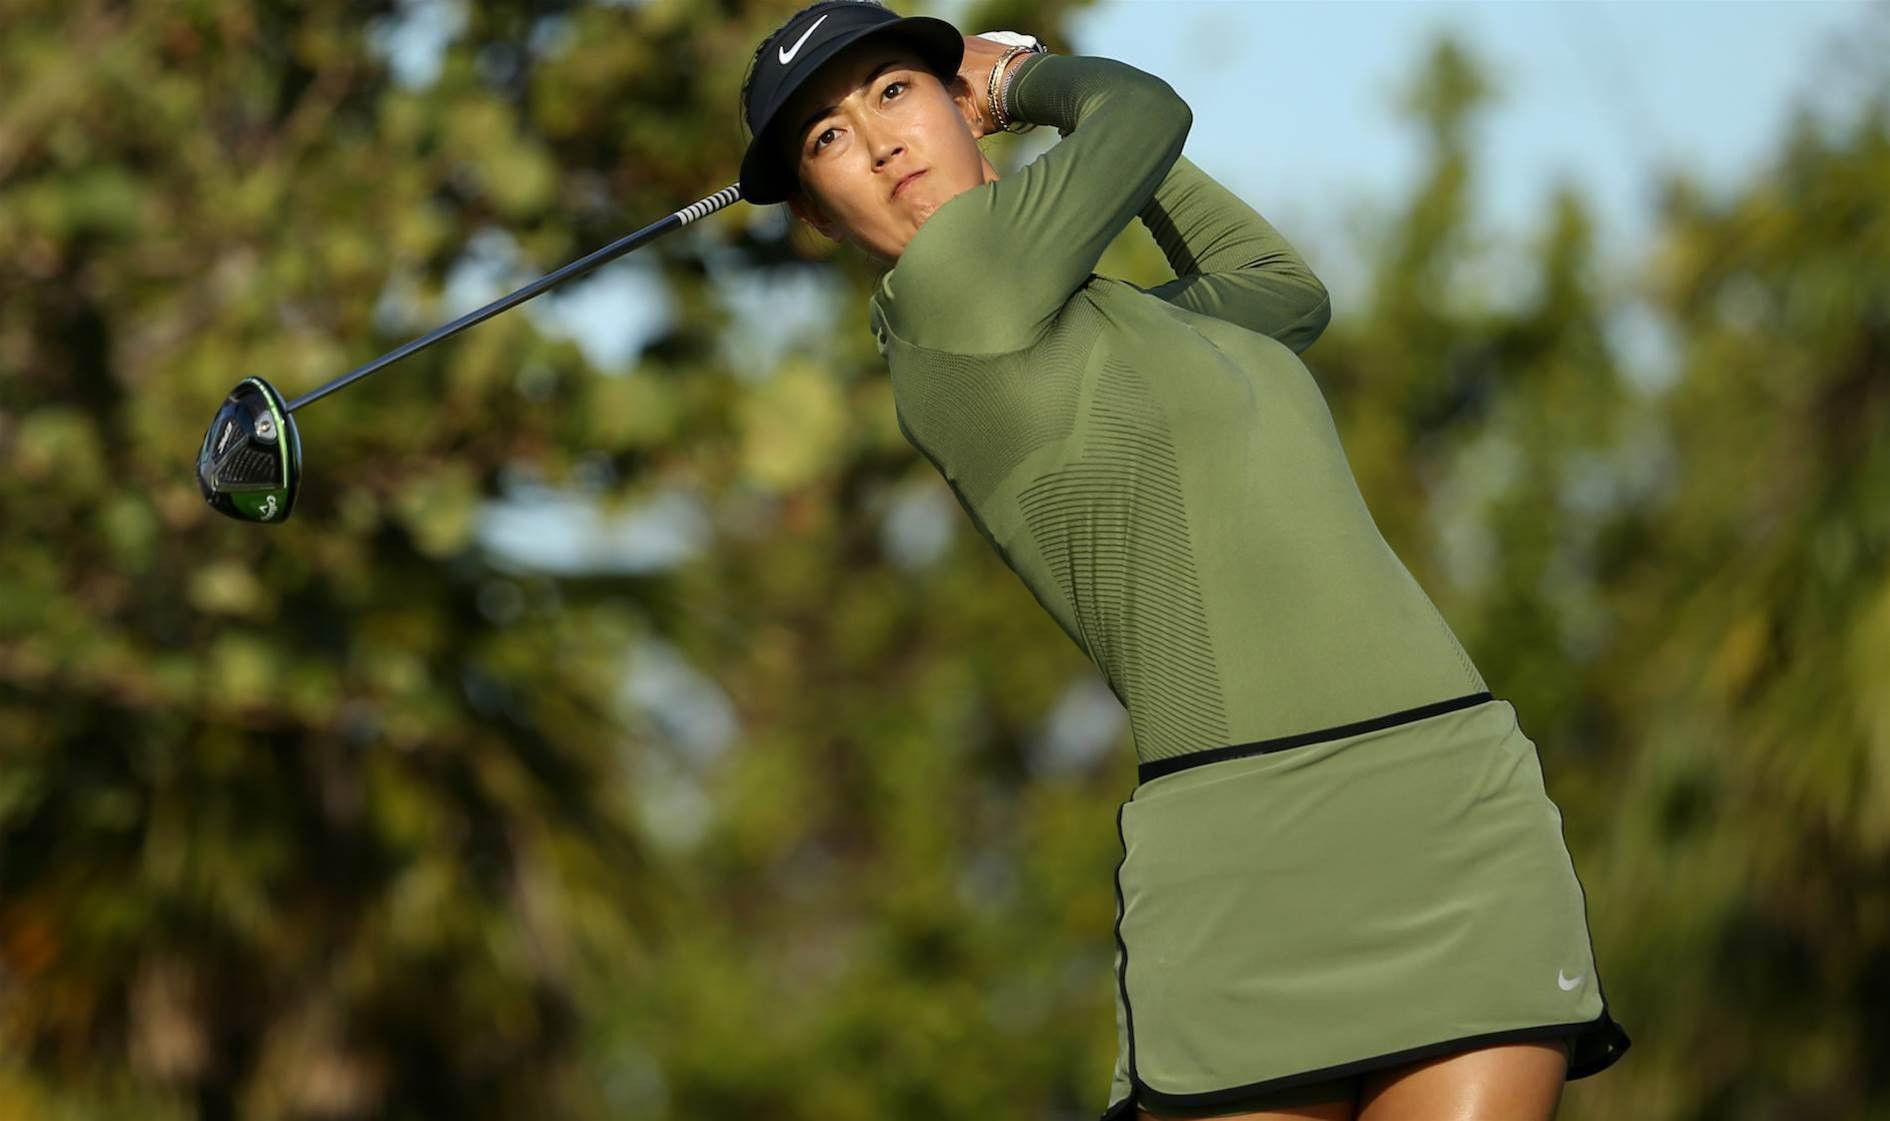 WOMEN'S OPEN: Wie clawing back into the limelight